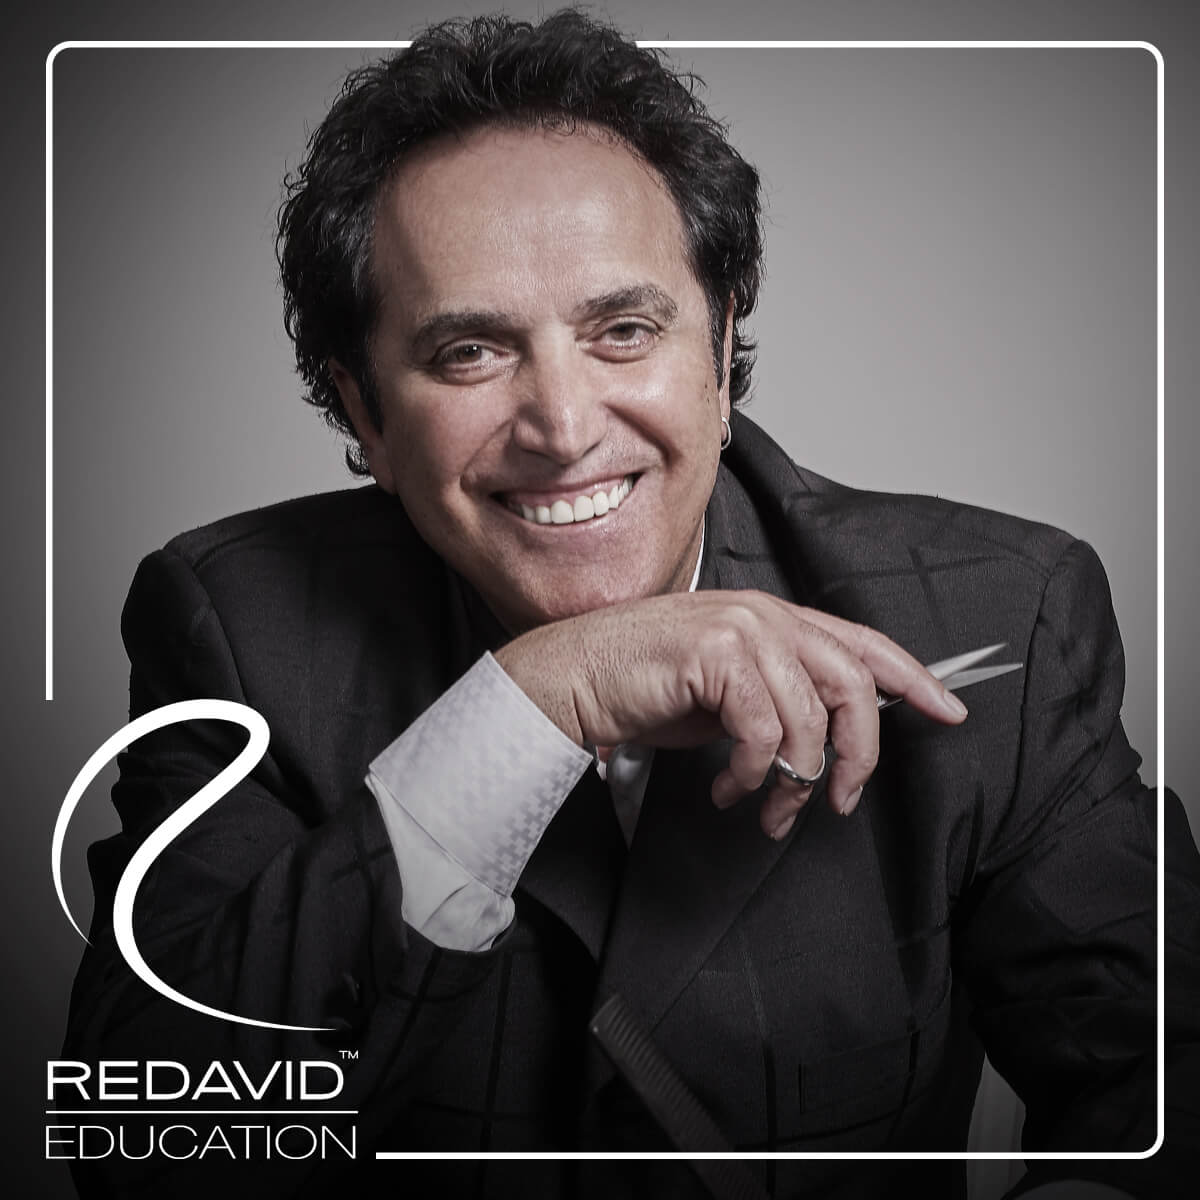 REDAVID Salon Products - Leonardo Redavid - Facebook Icon